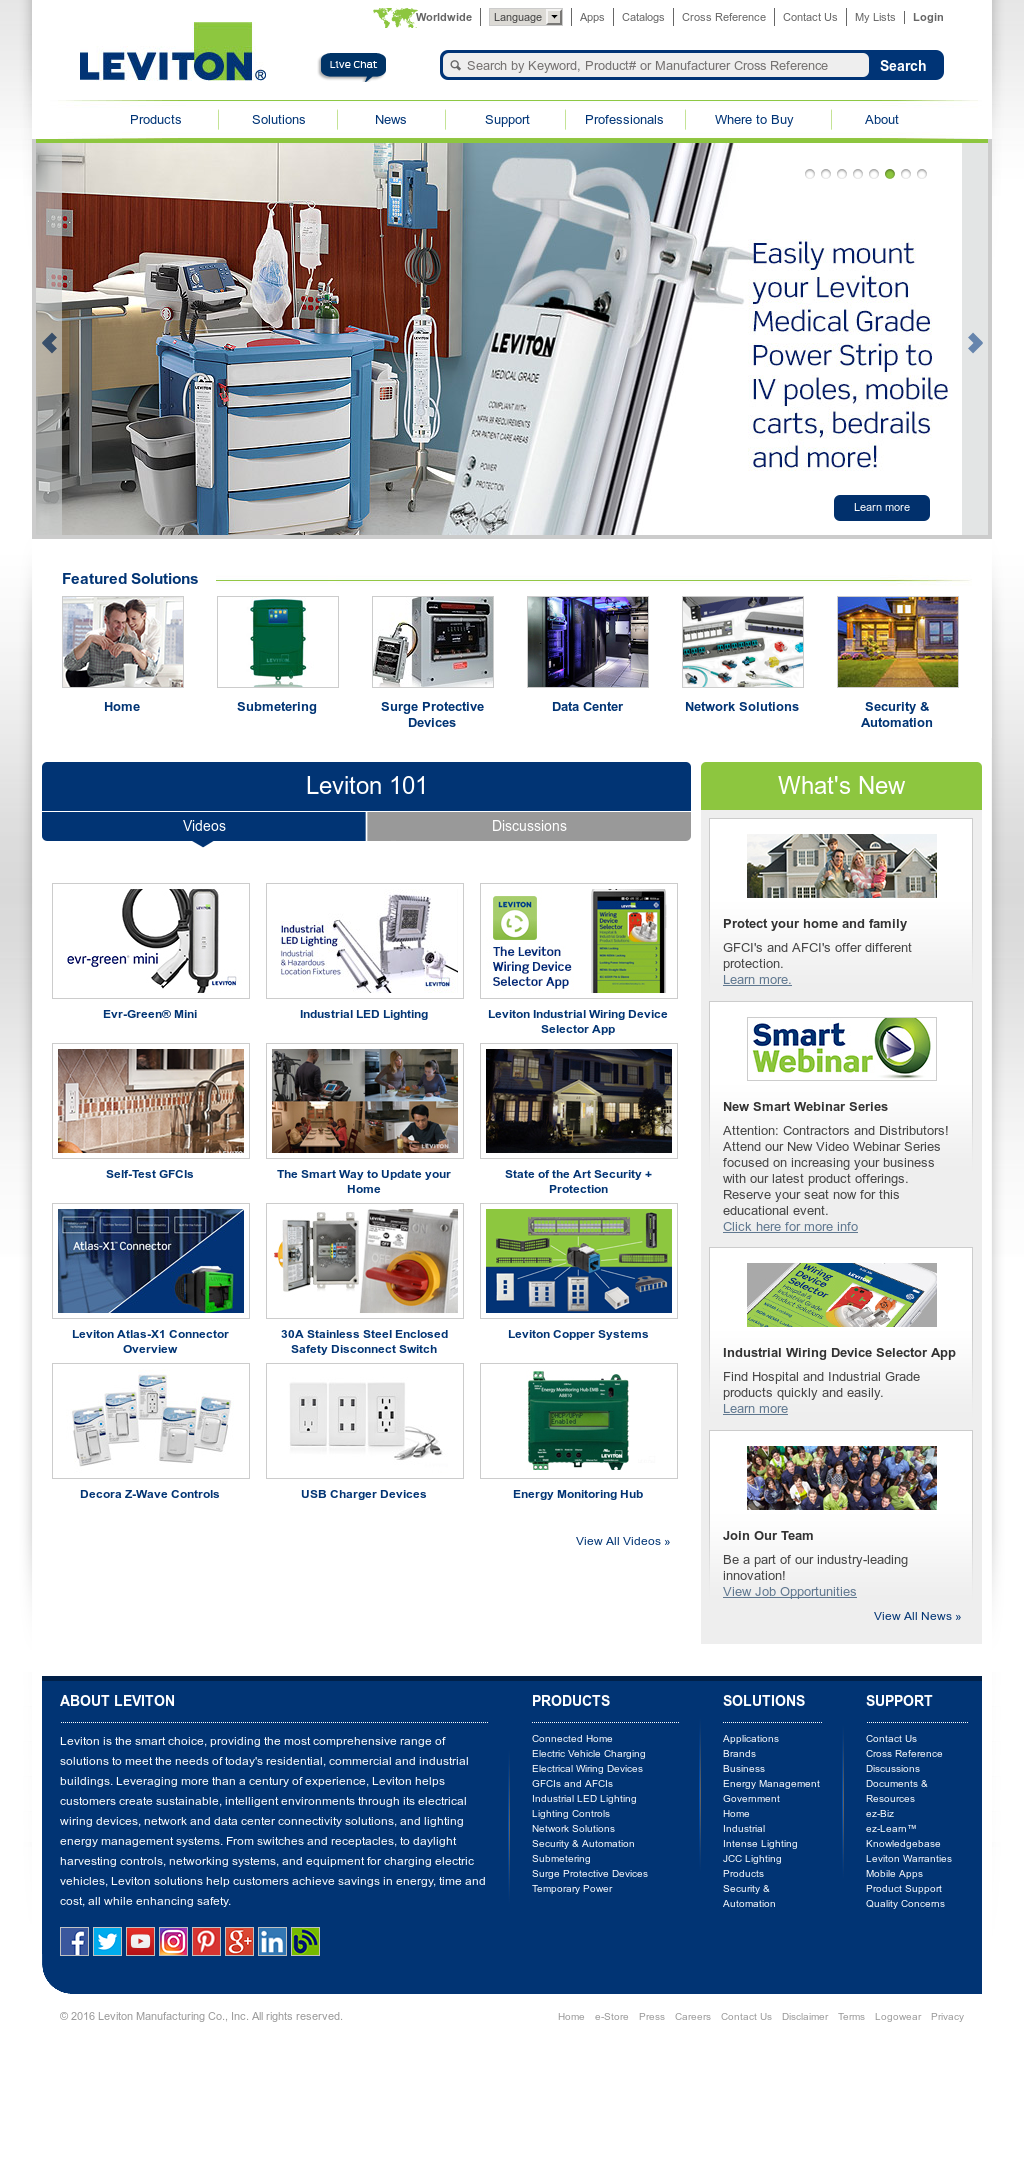 Leviton Manufacturing Competitors, Revenue and Employees - Company ...